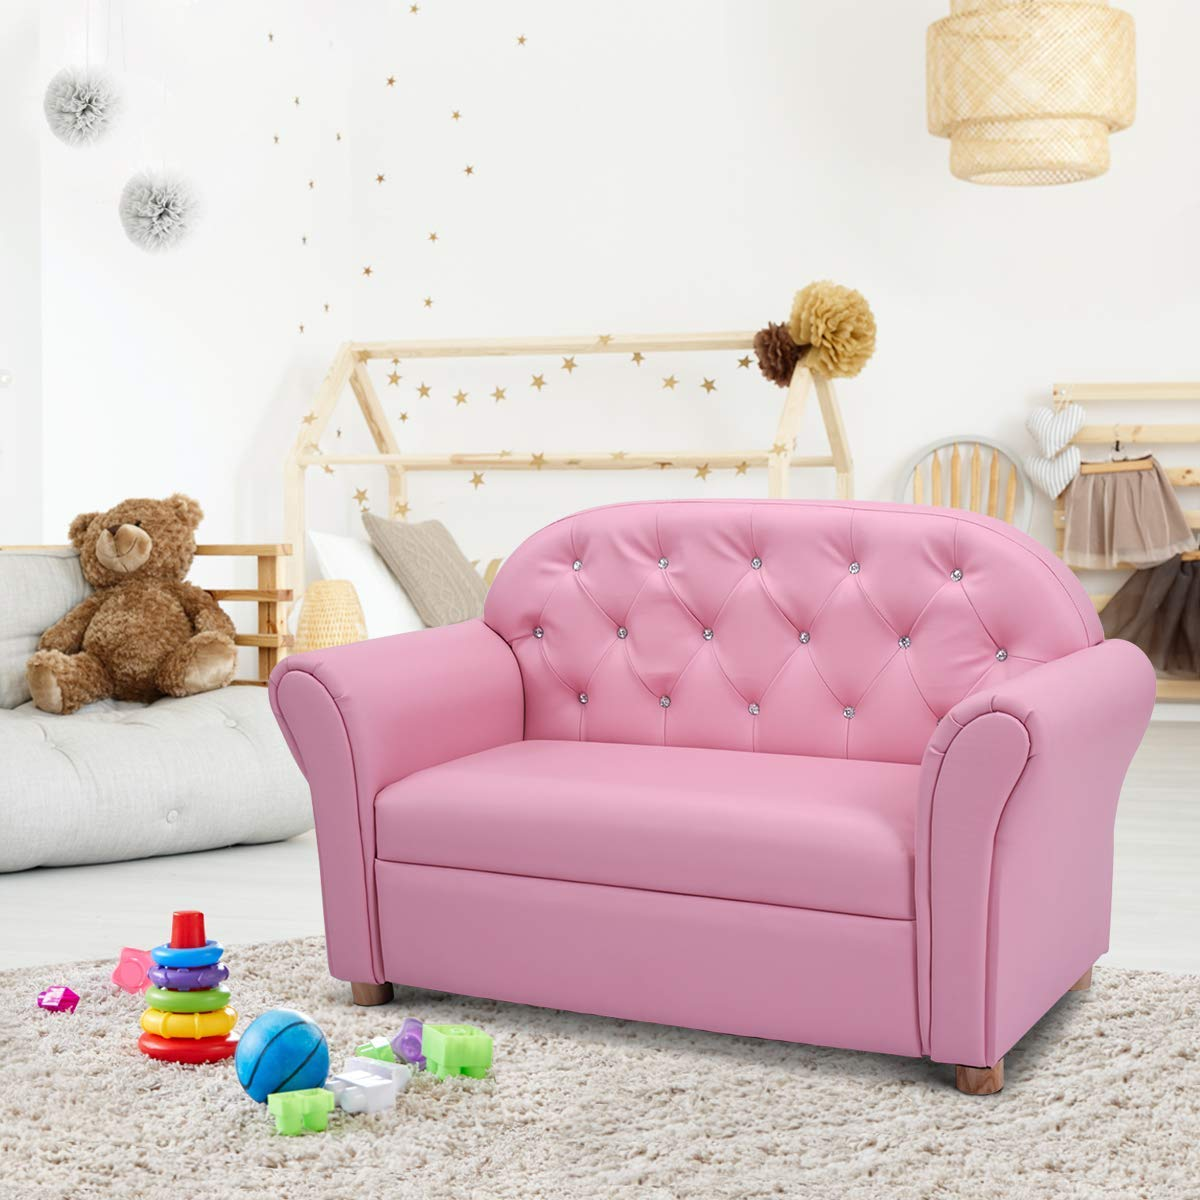 Amazon com costzon kids sofa pu leather upholstered couch sturdy wood construction armrest chair for preschool children 37 inch pink couch toys